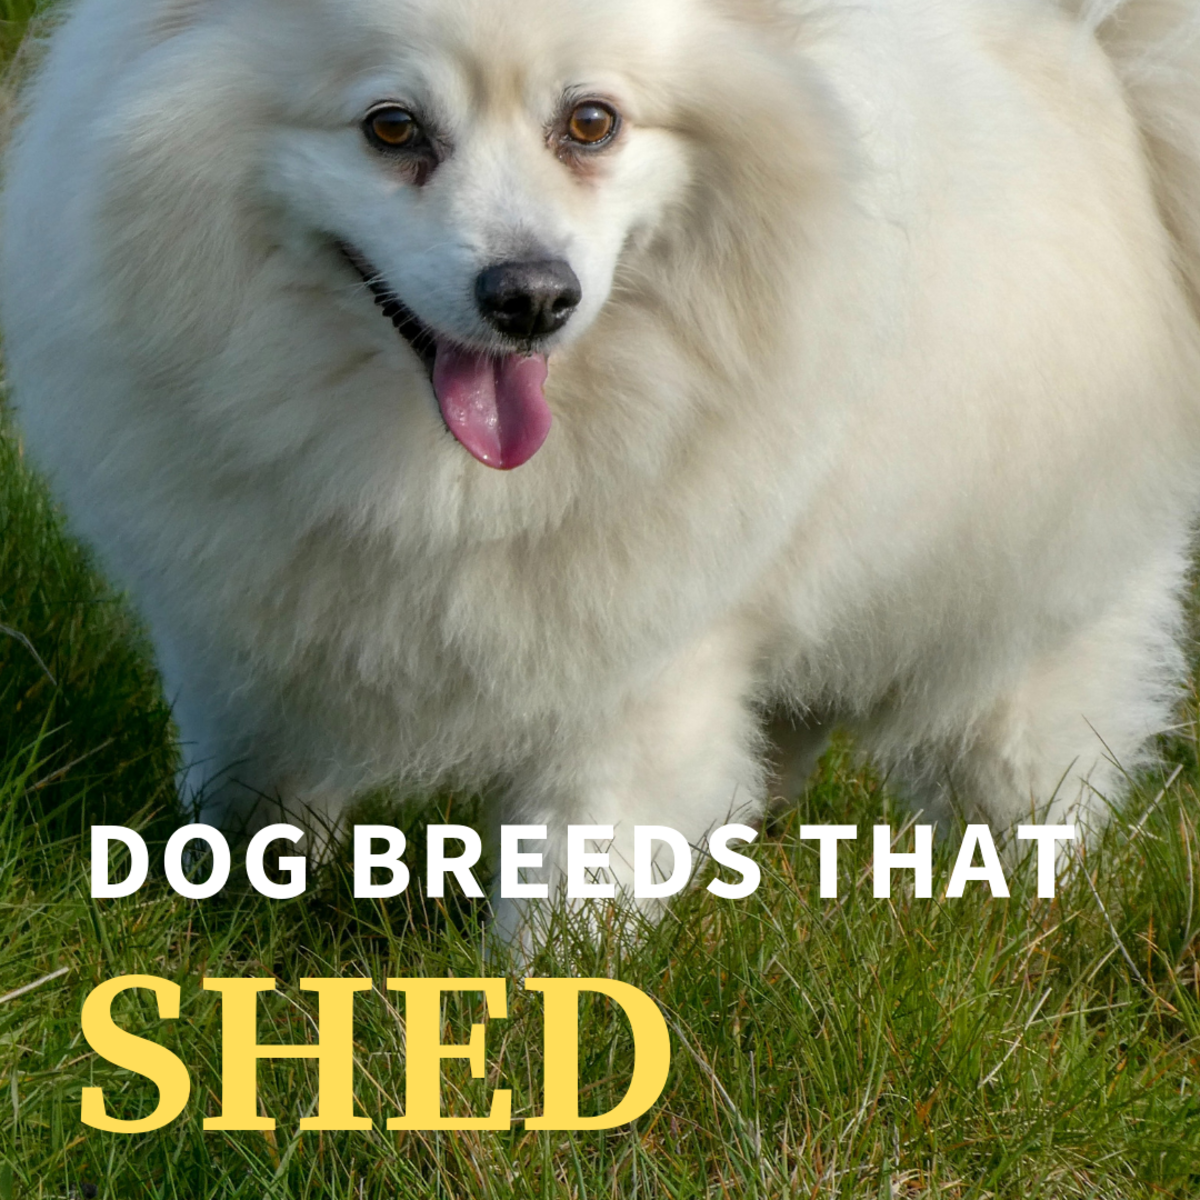 Dog Breeds That Shed